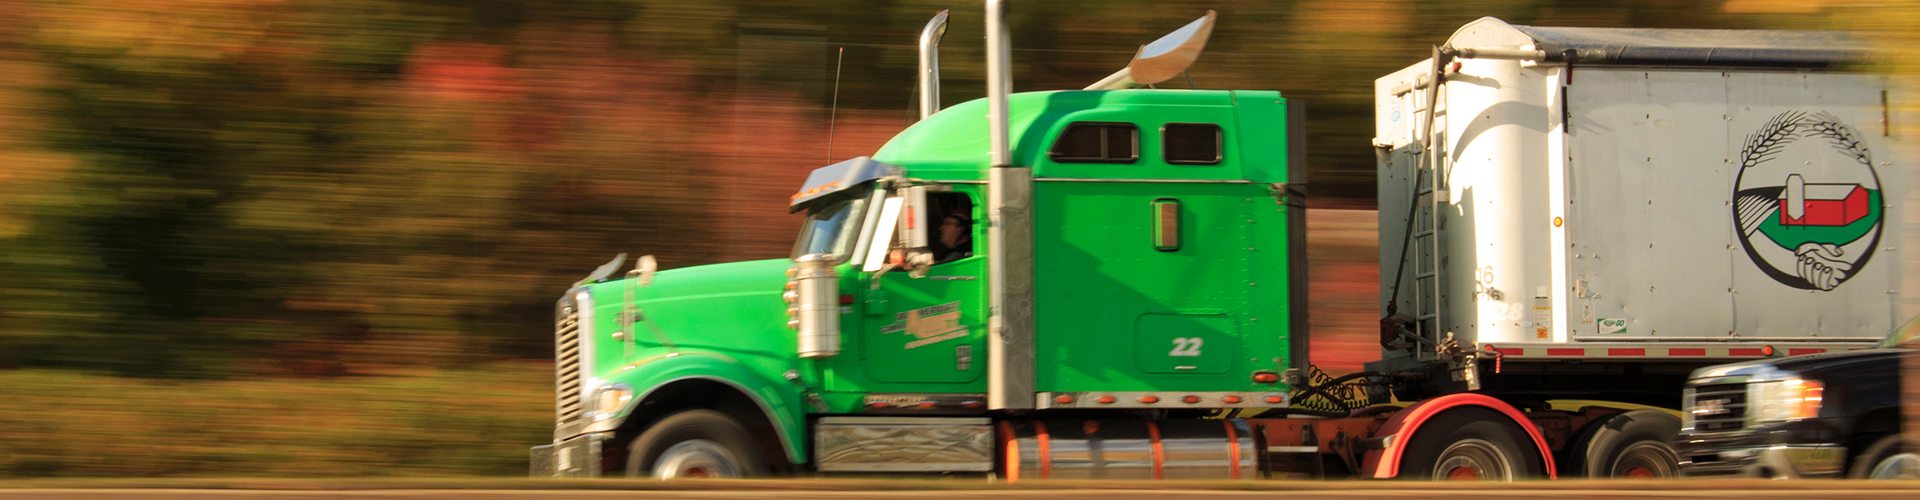 Electrical Components for Trucks | TriangleTruck Parts